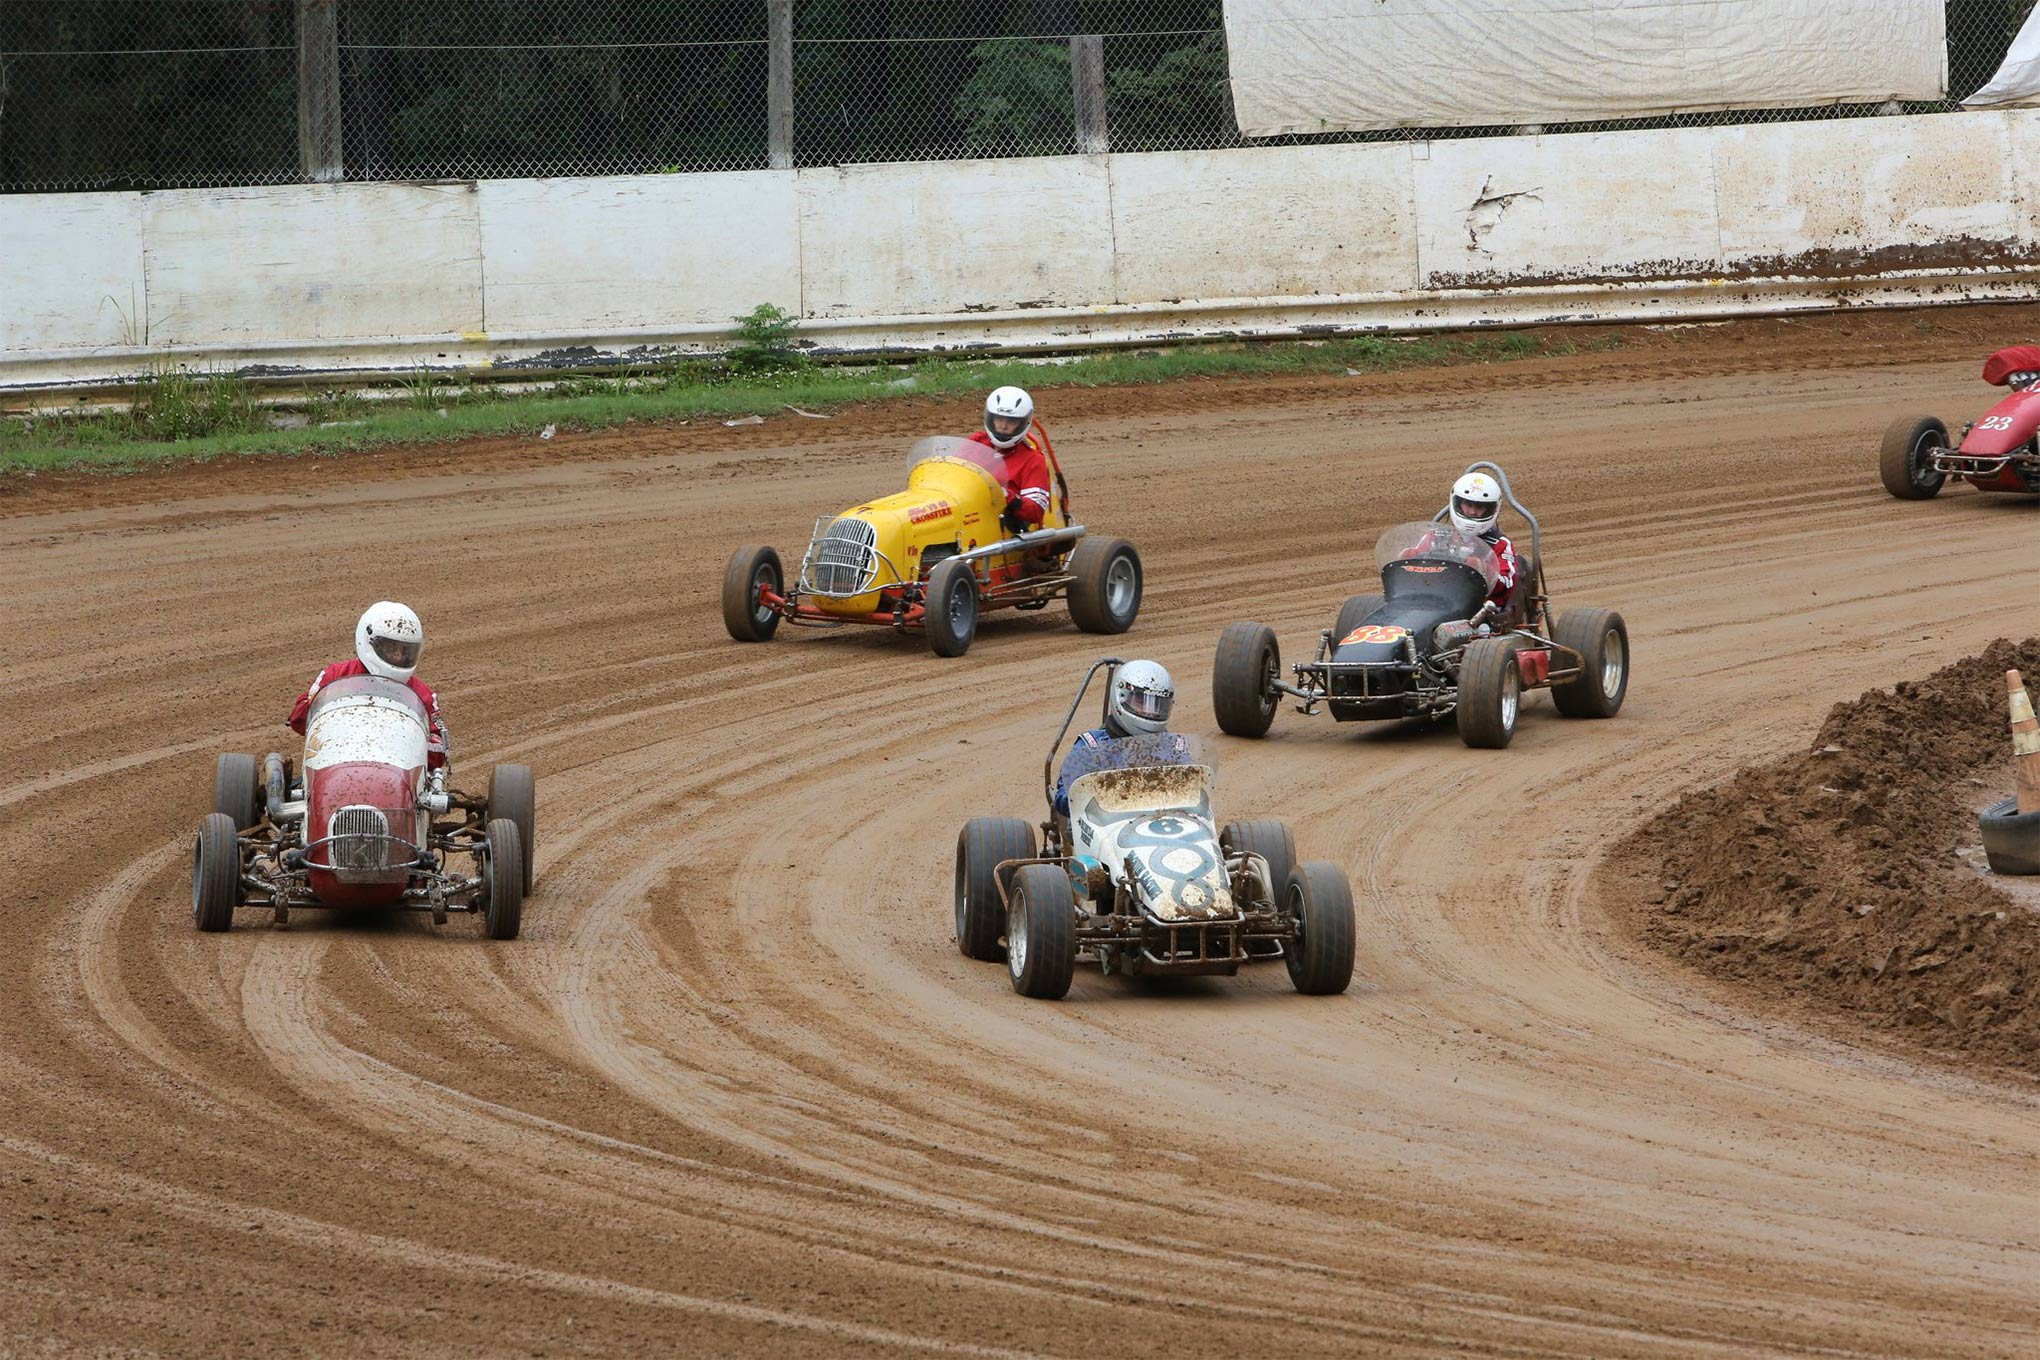 The Daytona Group has separate divisions for antique Sprint Cars and Midgets. Seeing as how these drivers are exposed, it's no wonder why the group is very strict about avoiding contact.